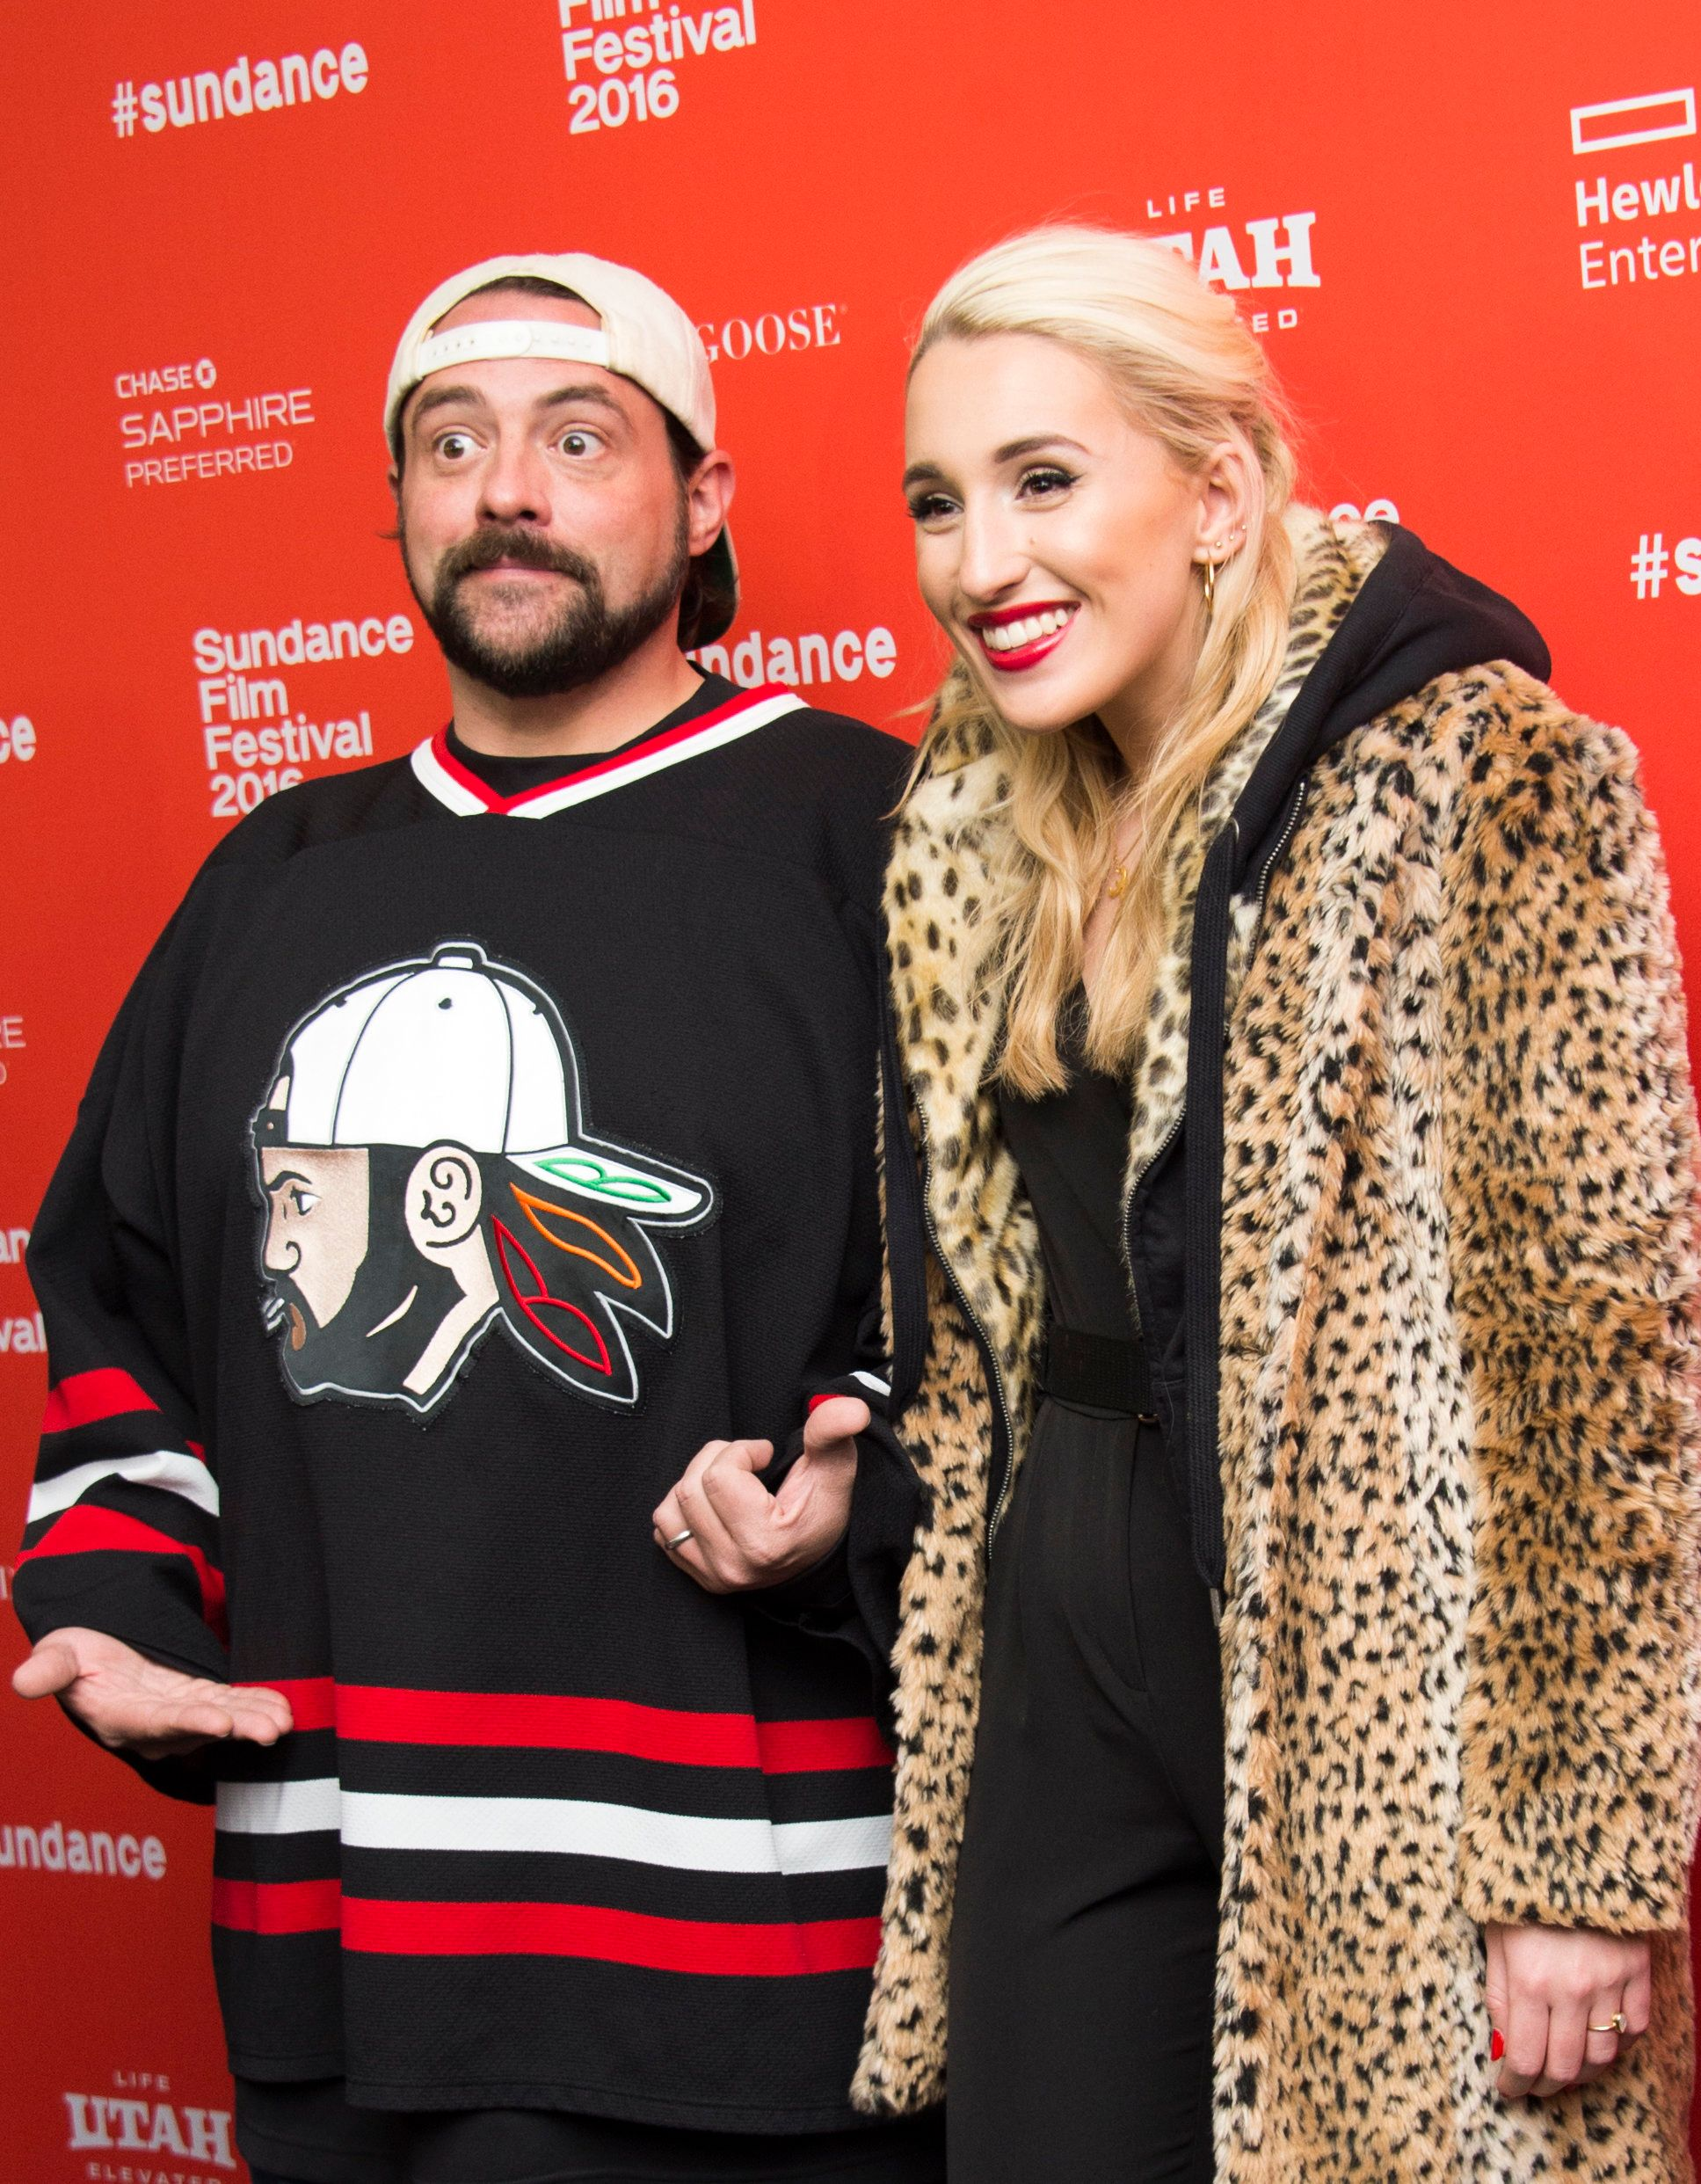 Director Kevin Smith and his daughter, actress Harley Quinn Smith attend Yoga Hosers Premiere at Sundance Film Festival in Park City, Utah, January 24, 2016. / AFP / Valerie MACON        (Photo credit should read VALERIE MACON/AFP/Getty Images)